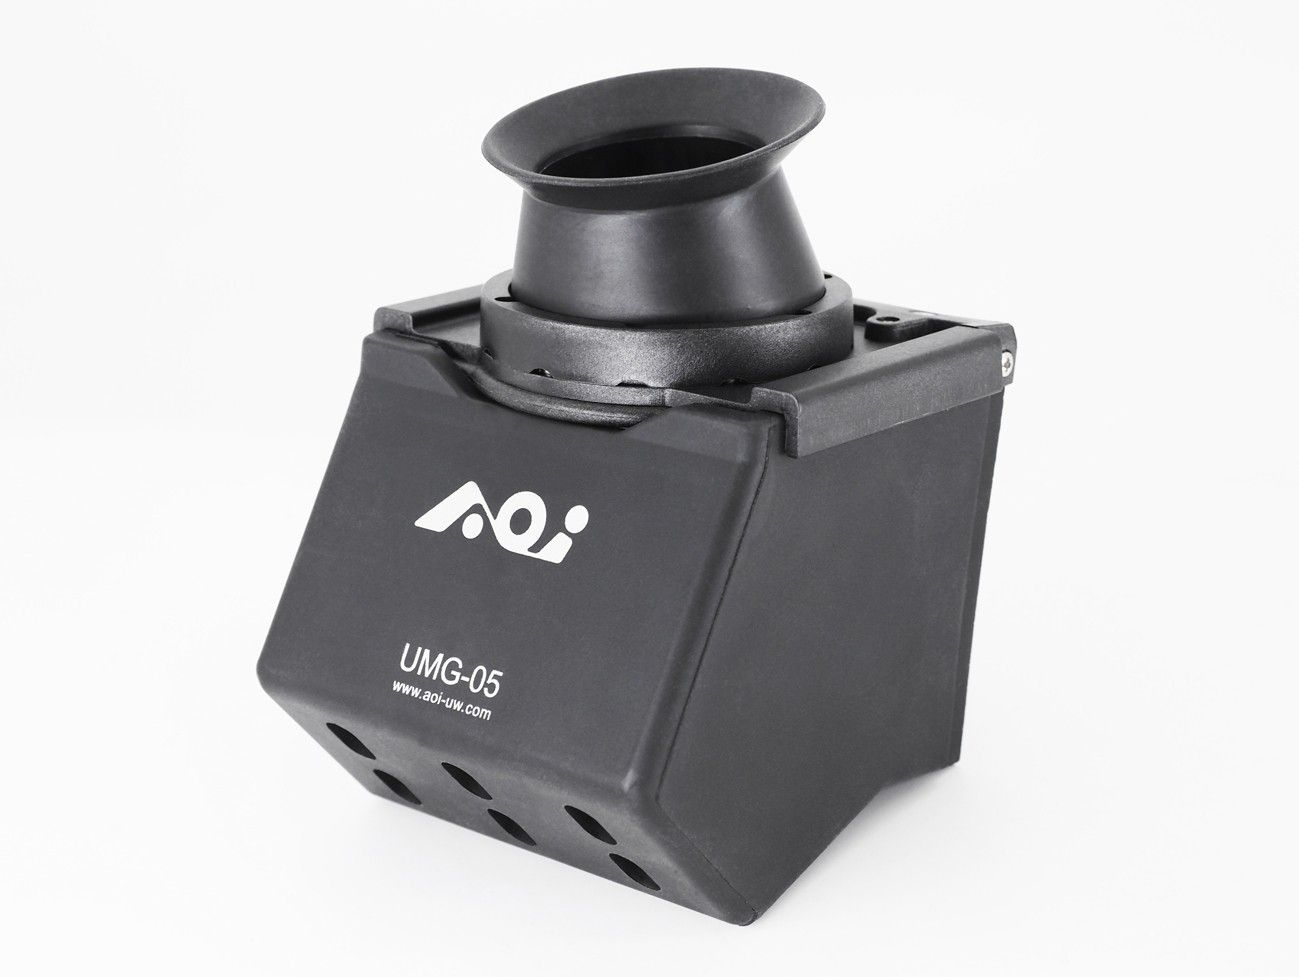 AOI UMG-05 Loupe LCD pour caisson compacts Olympus